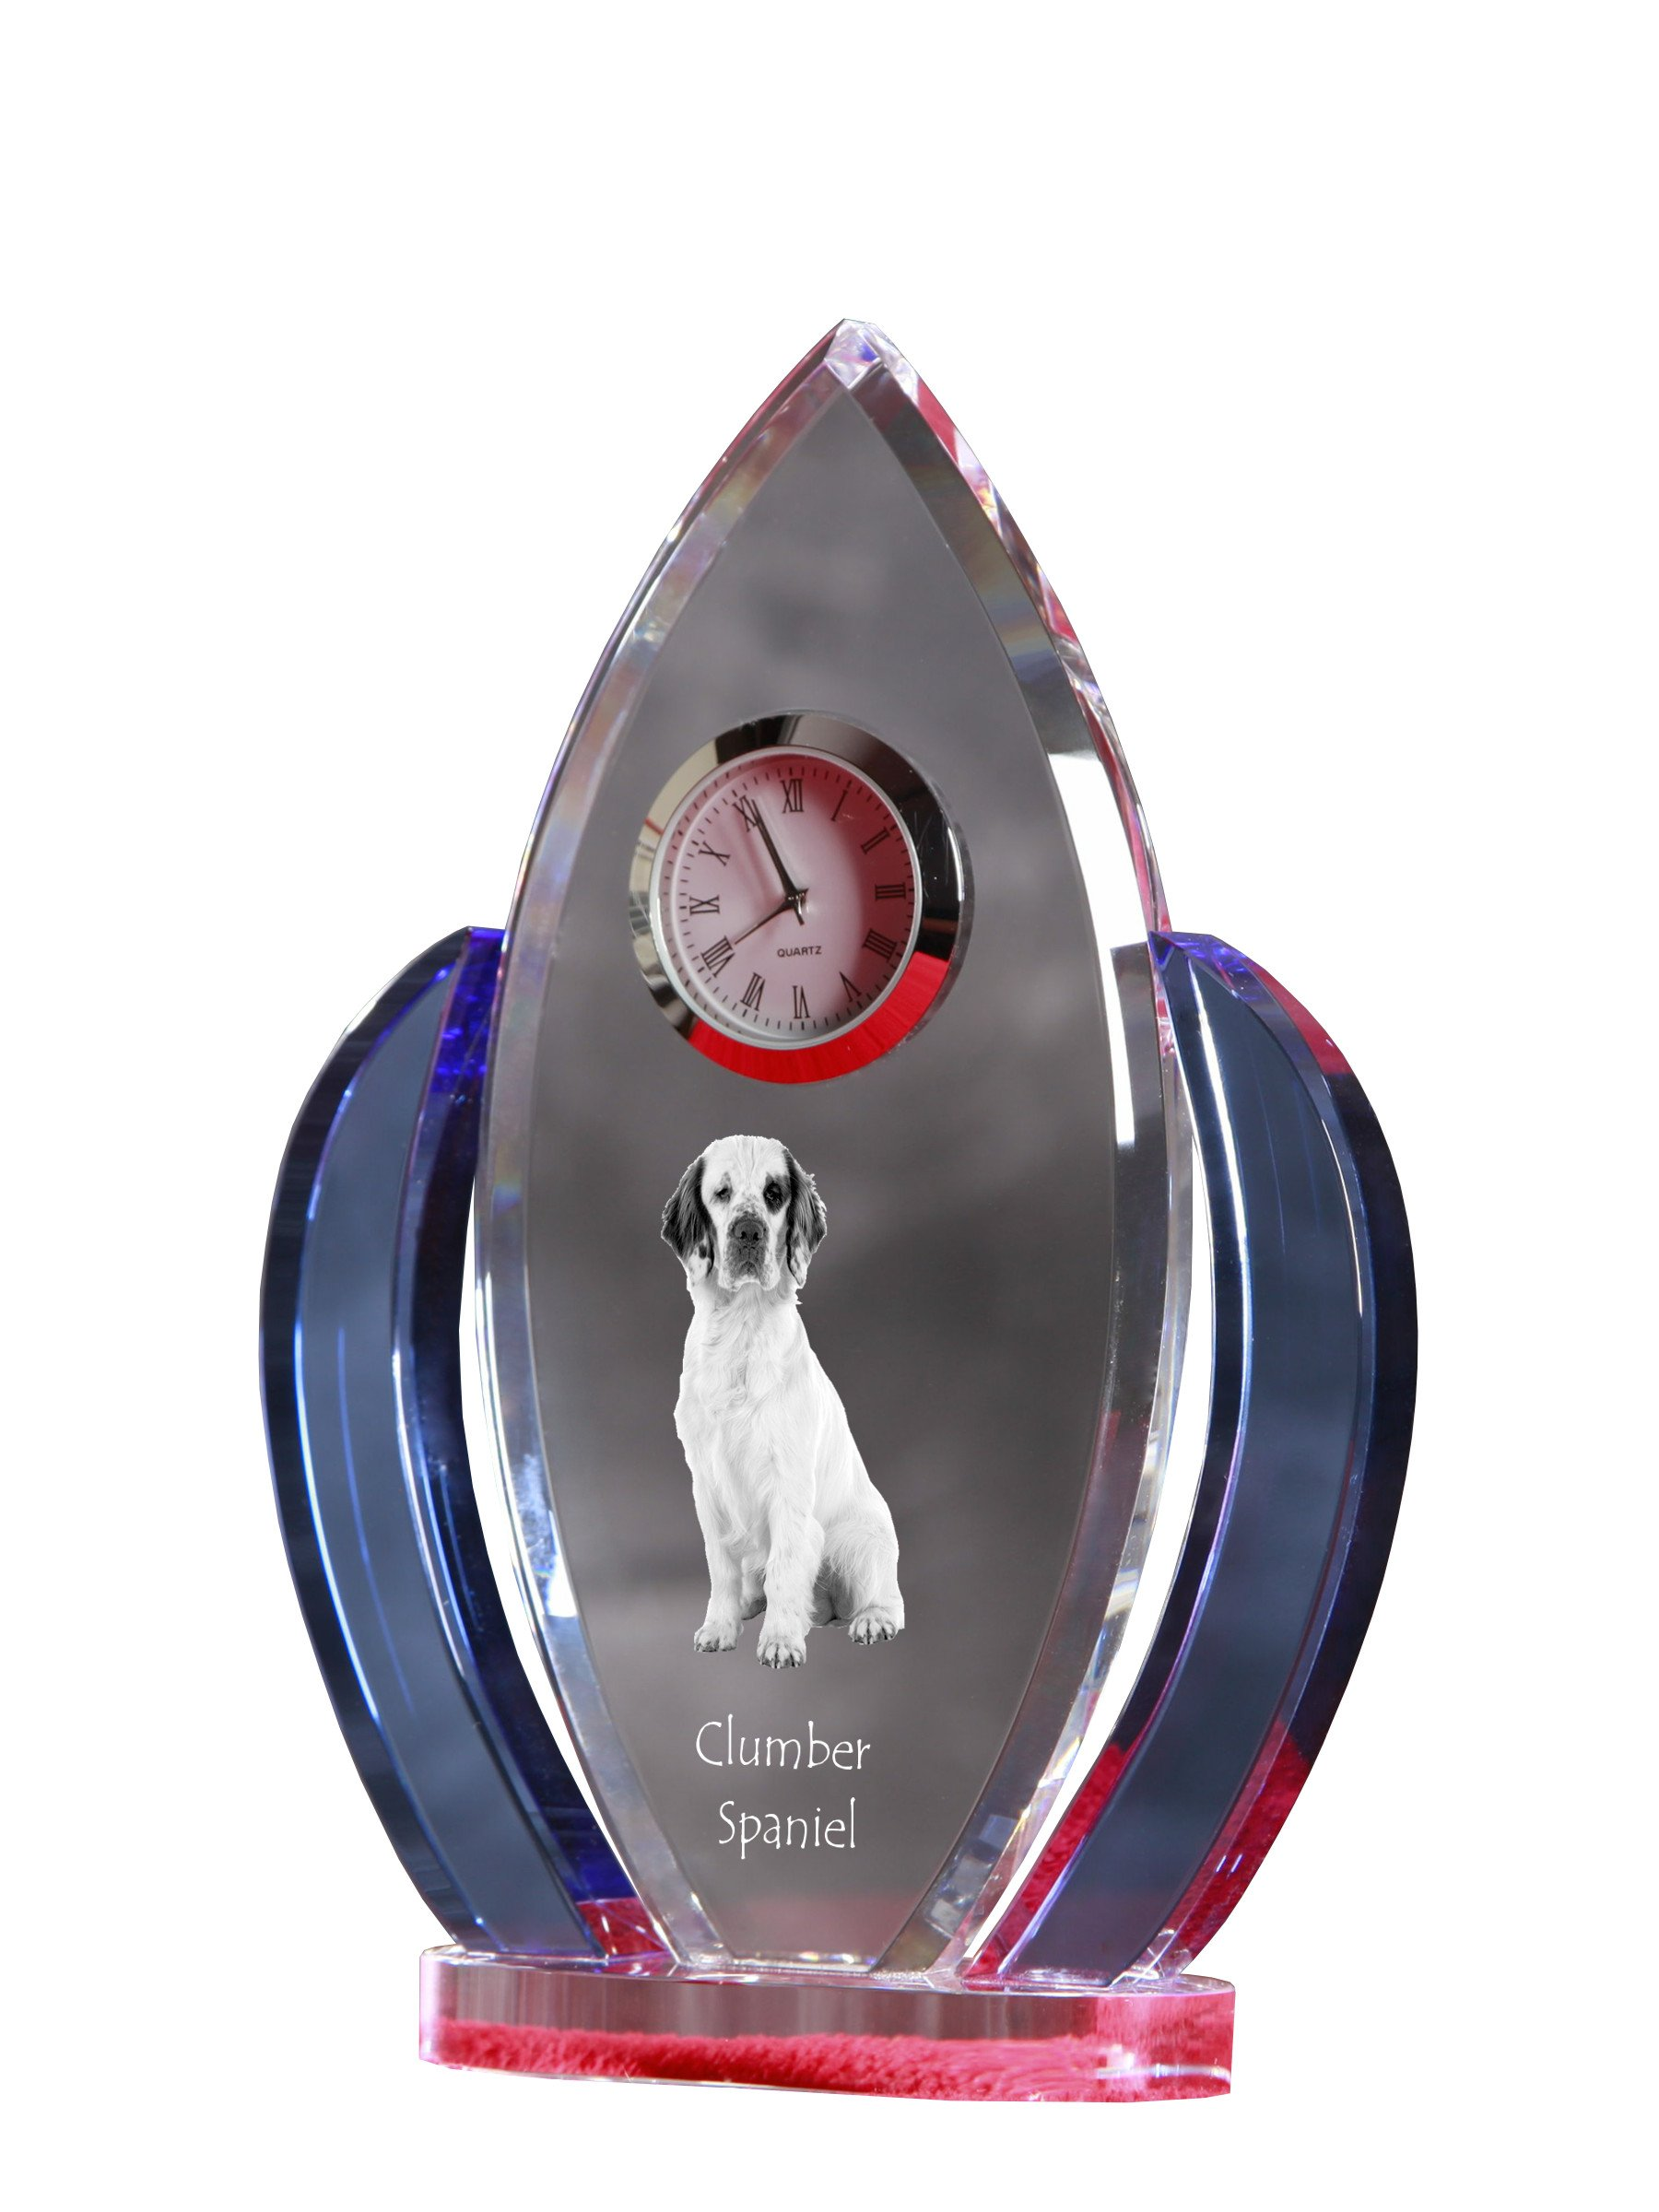 Clumber Spaniel, Crystal Clock, Shape of Wings with The Image of a Dog 2